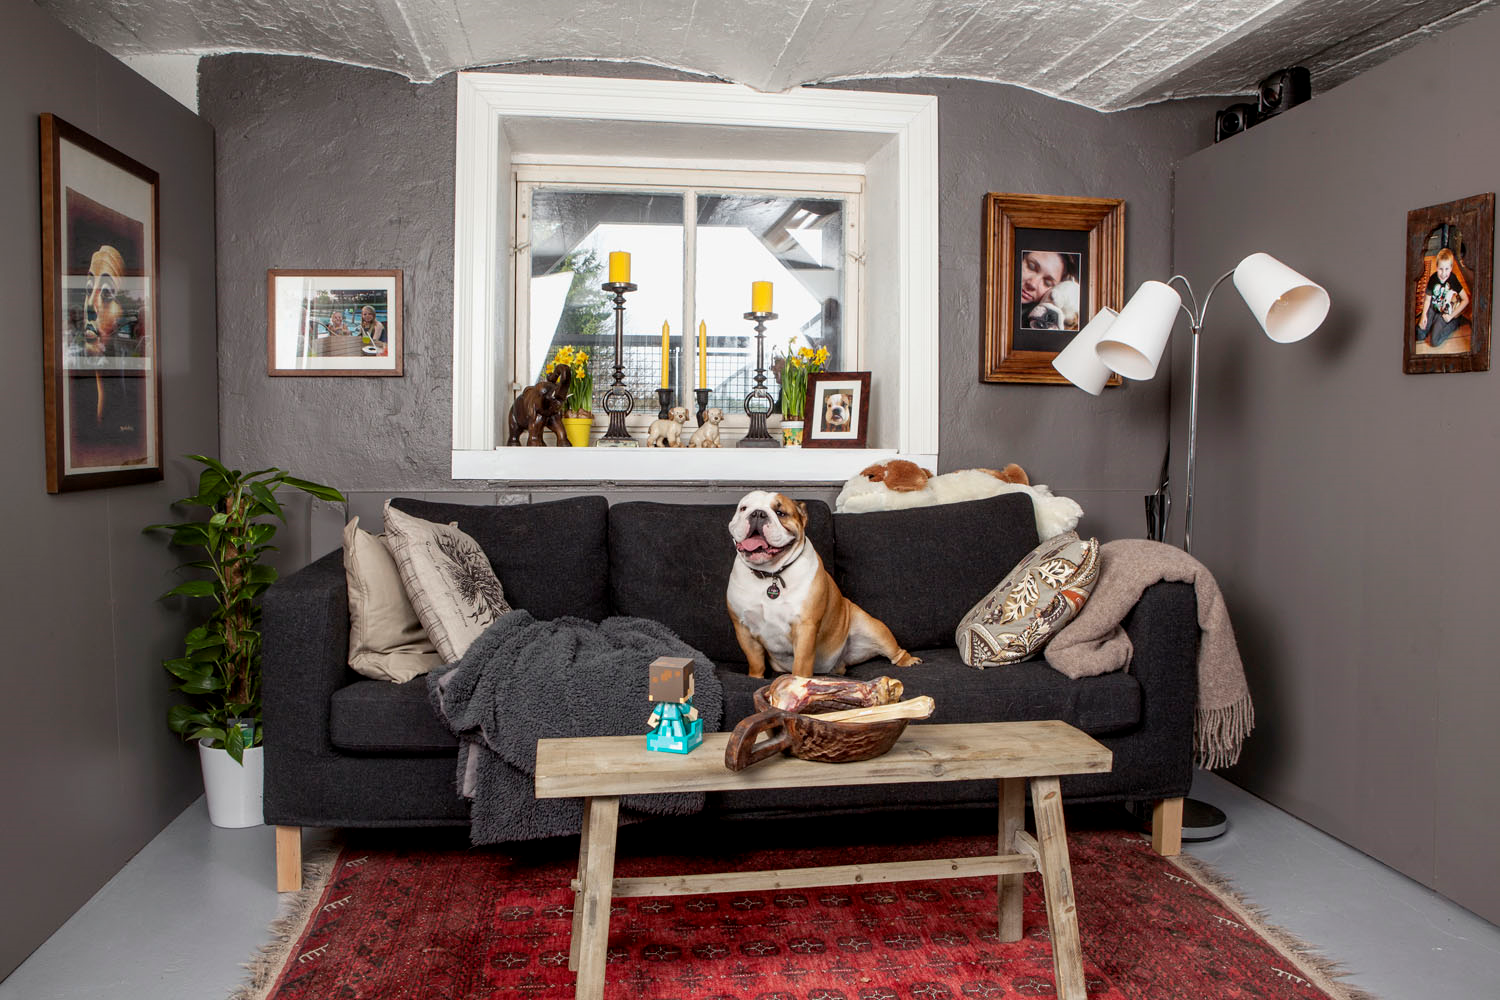 A bulldog love story from Norway